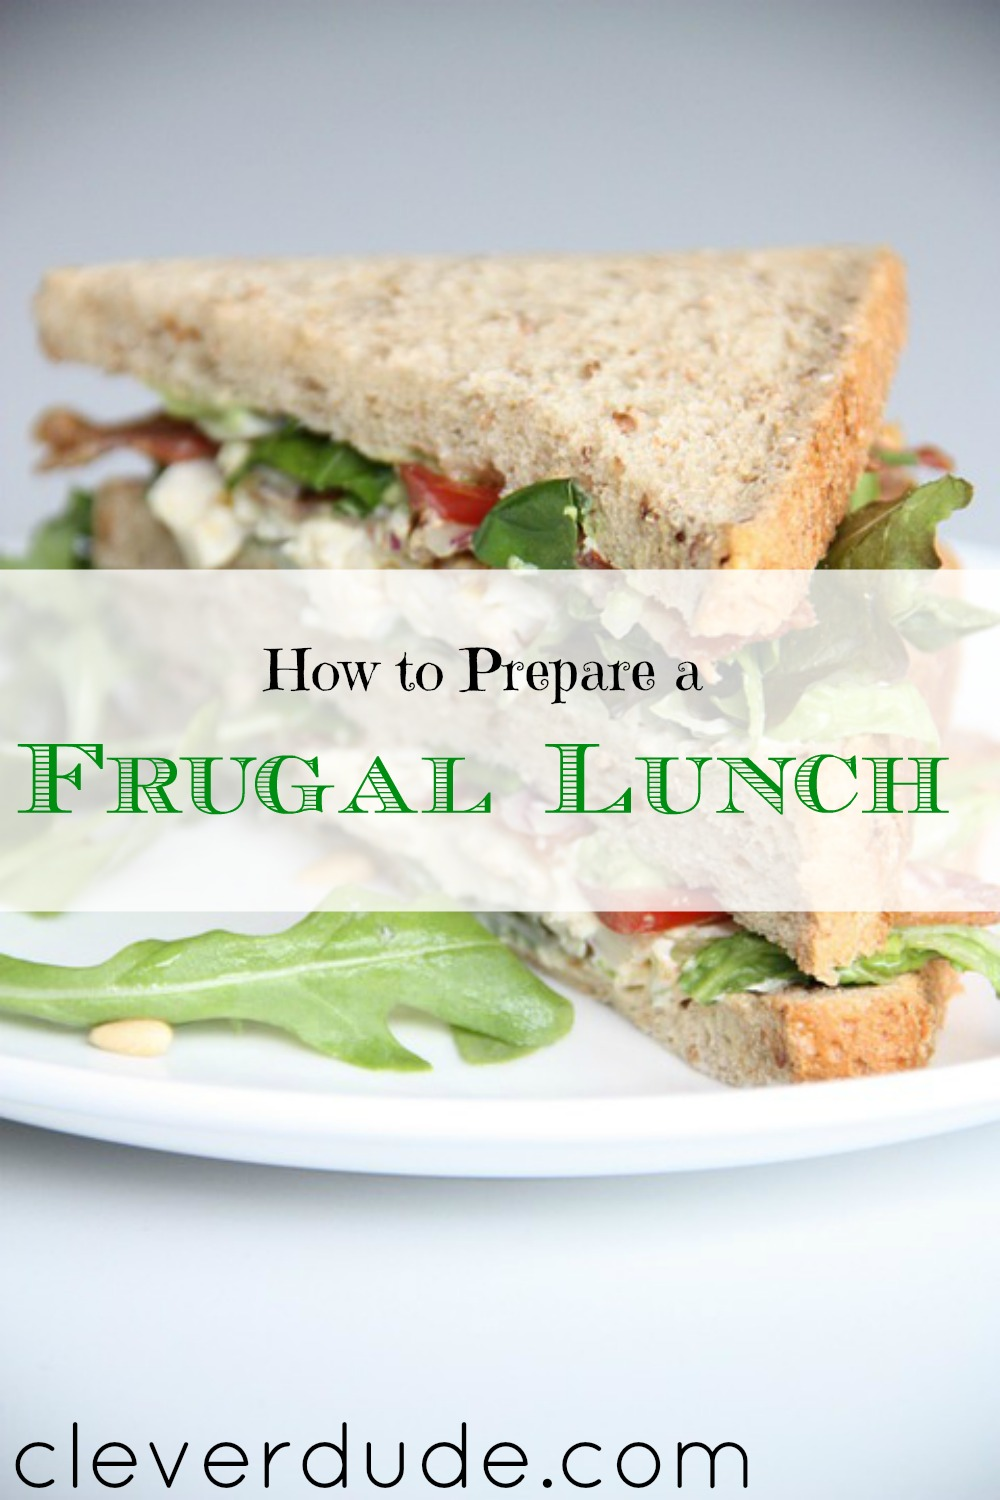 saving money on lunches, preparing a frugal lunch, meal prep